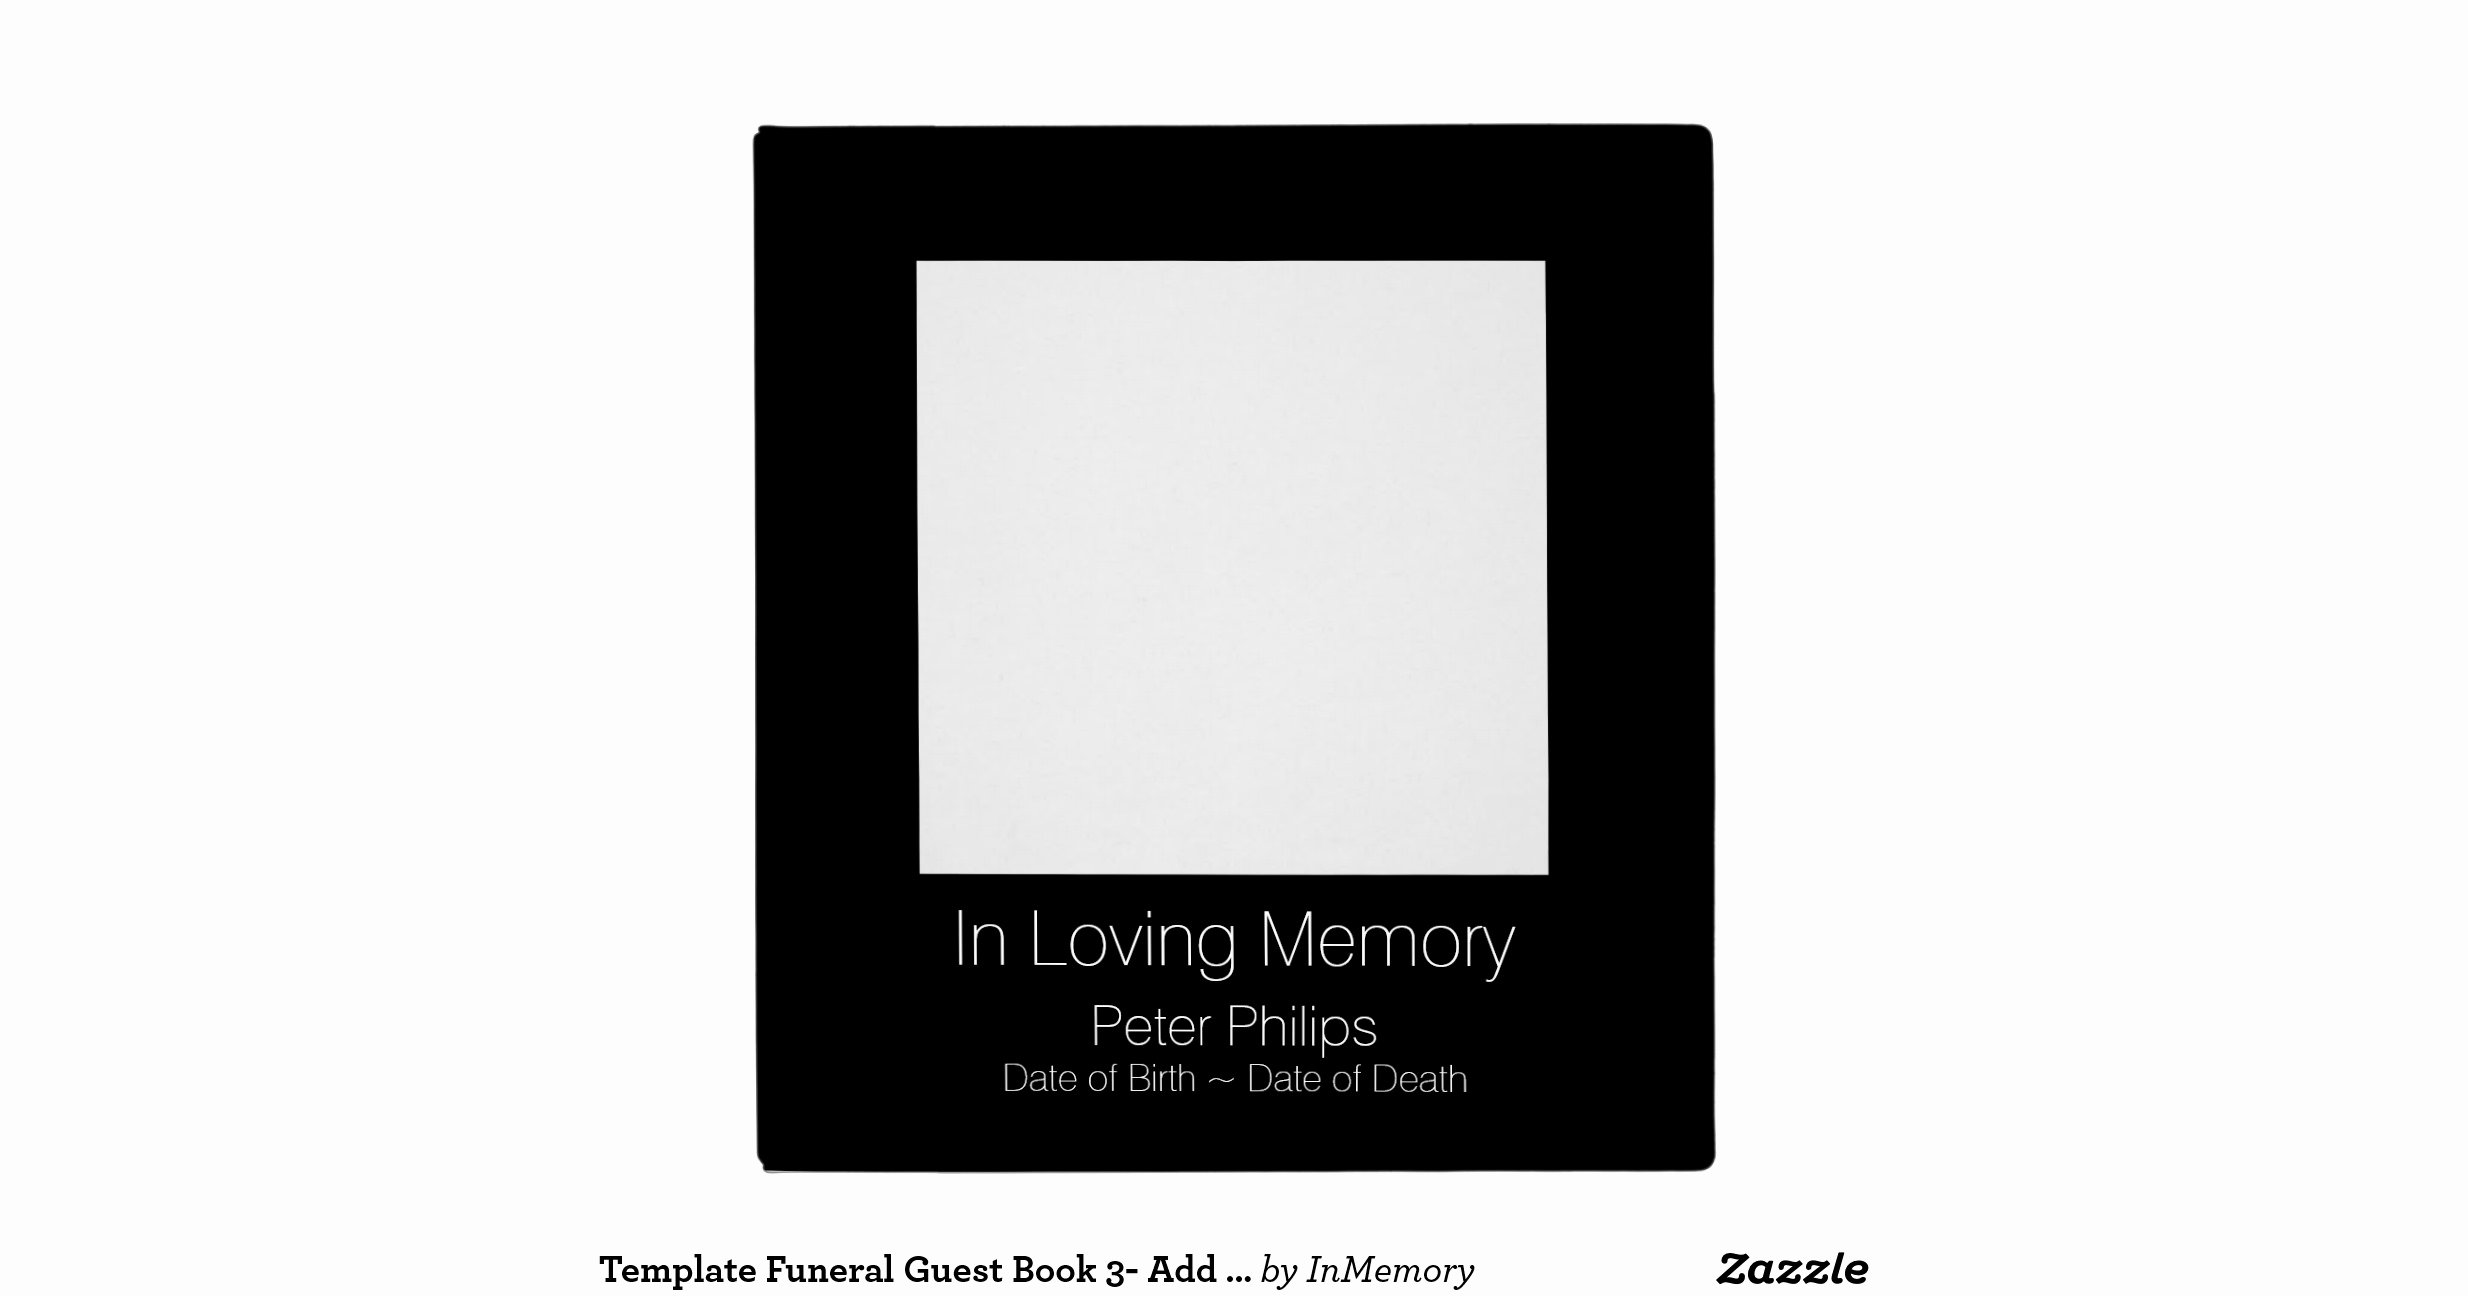 Funeral Guest Book Template New Template Funeral Guest Book 3 Add Favorite Image Binder